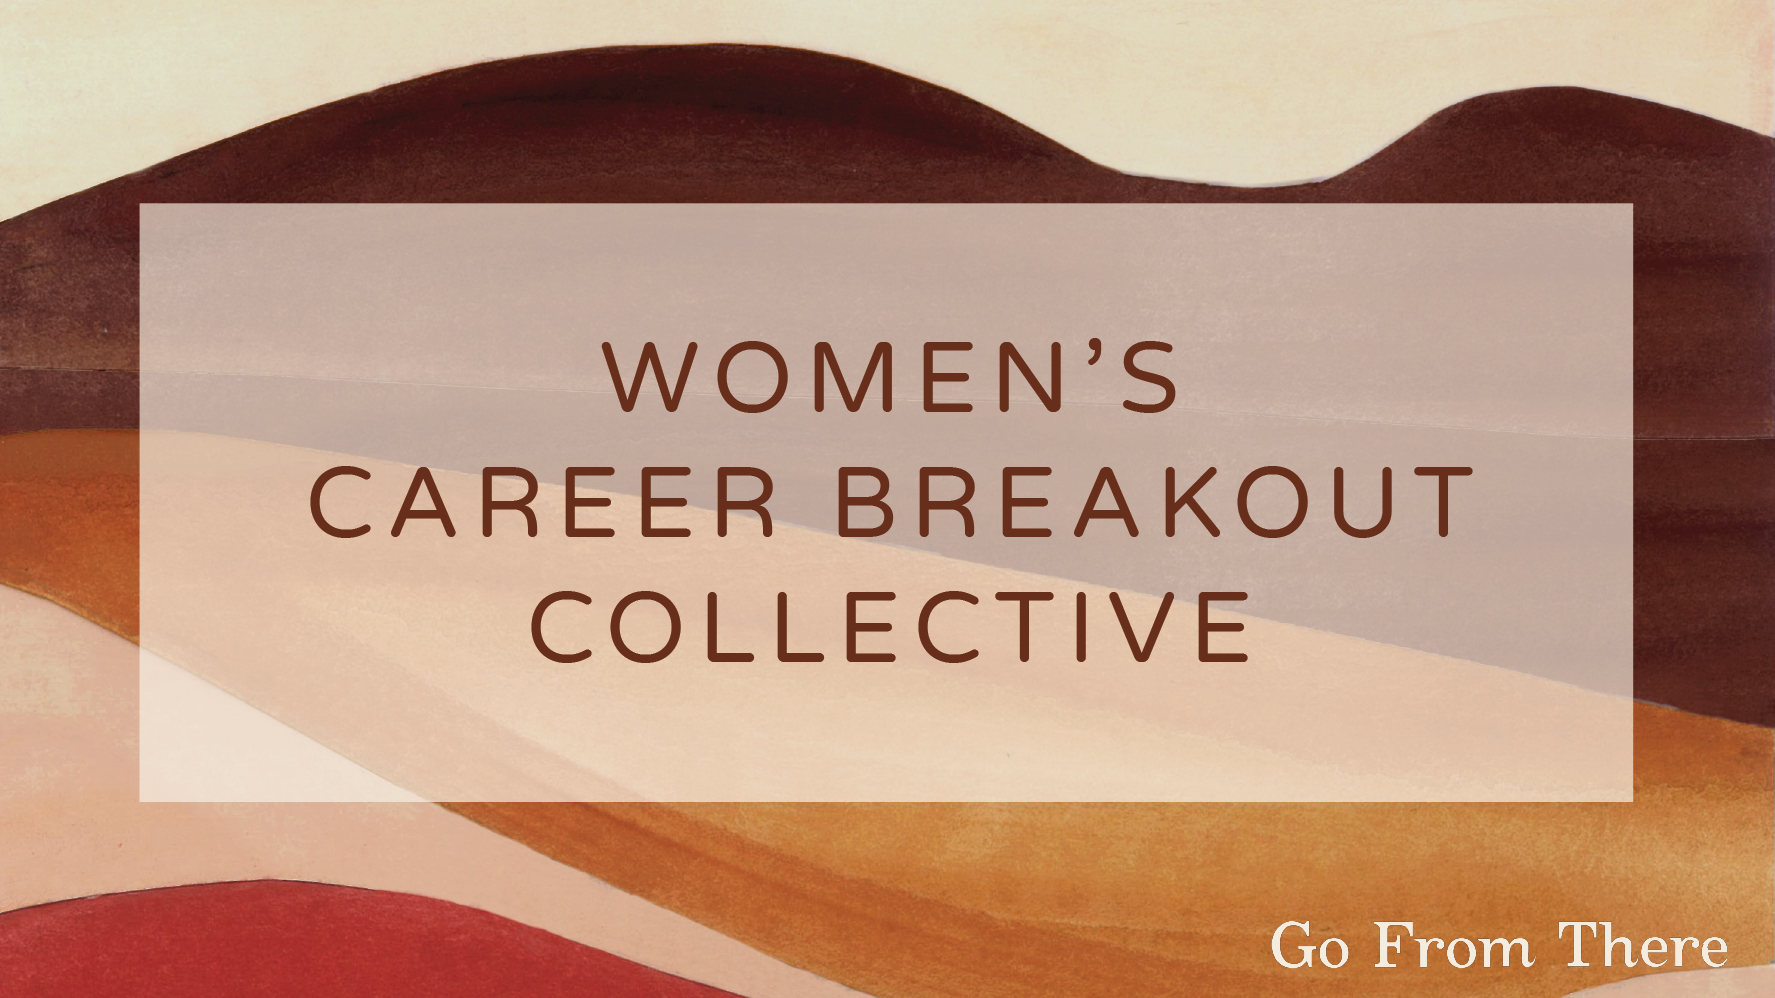 Women's Career Breakout Collective - NYC